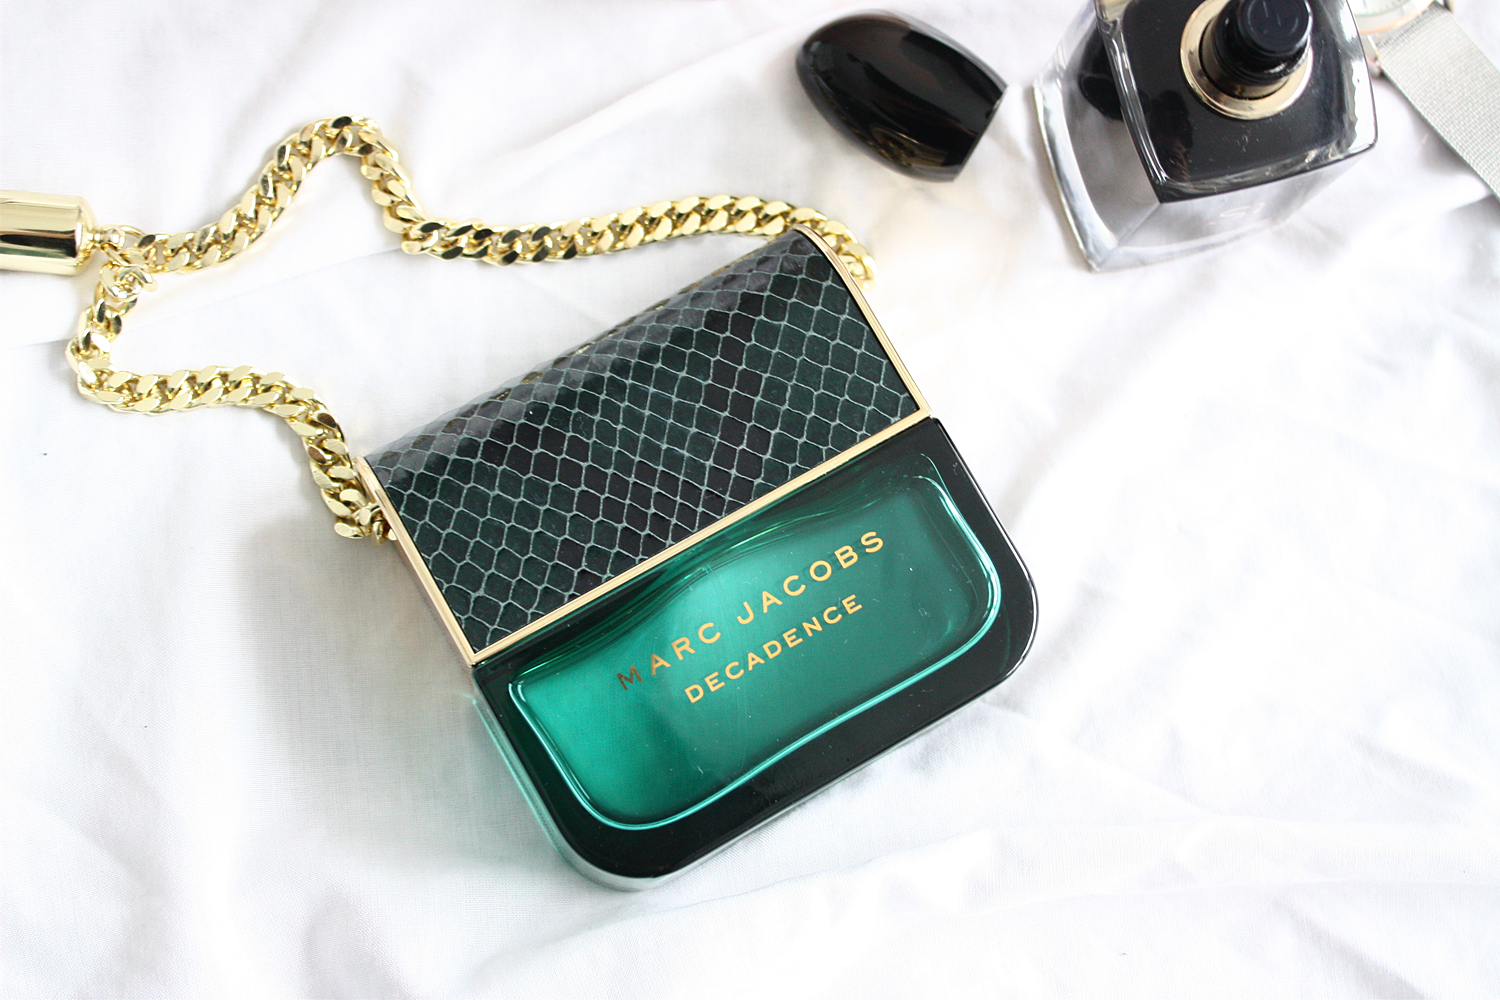 marc jacobs decadence opinie, giorgio armani si opinie, perfumy marc jacobs